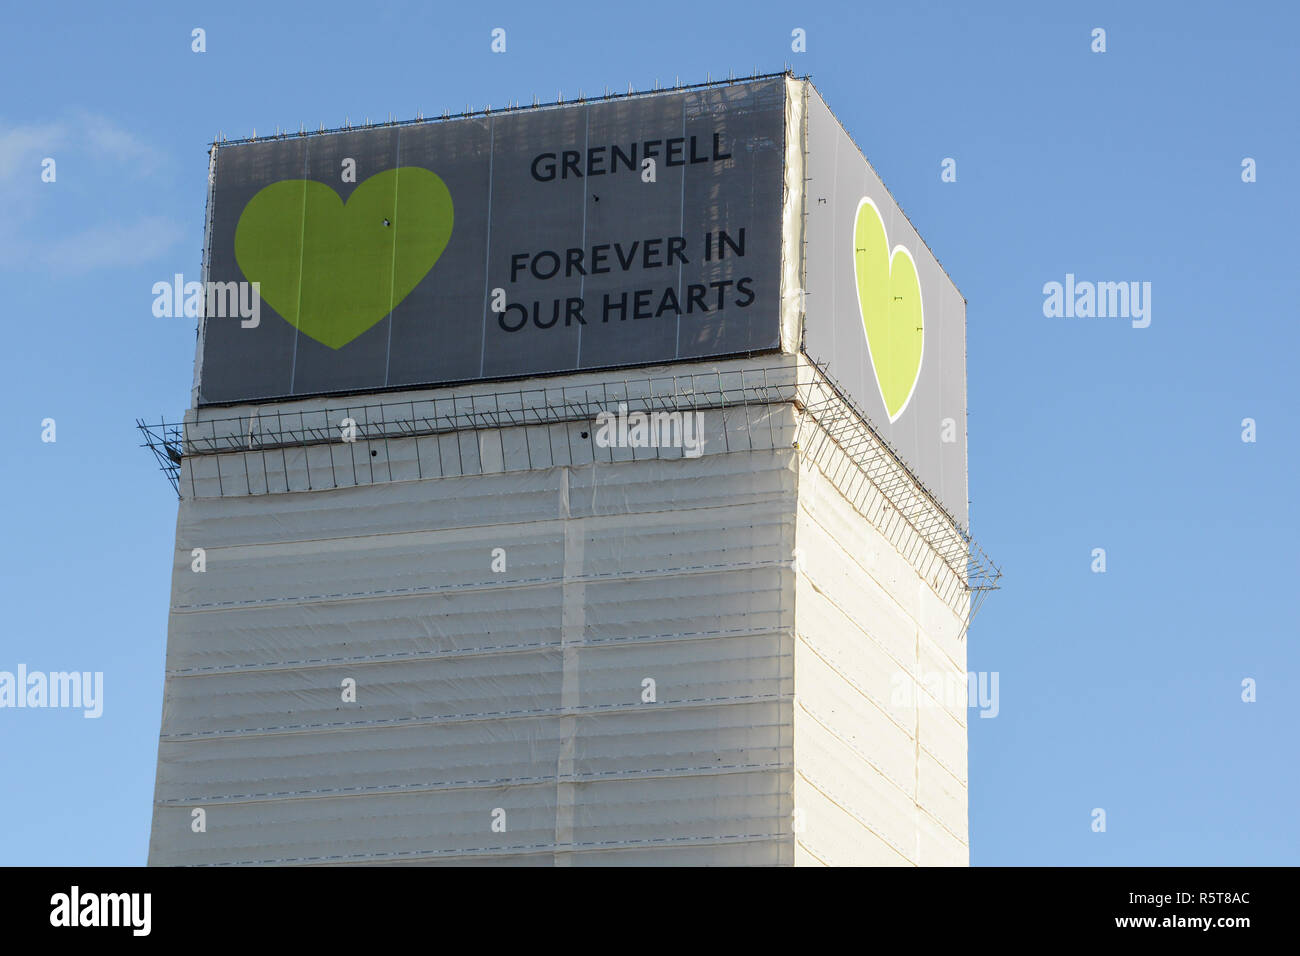 Grenfell Tower - Forever in our hearts, London, UK - Stock Image